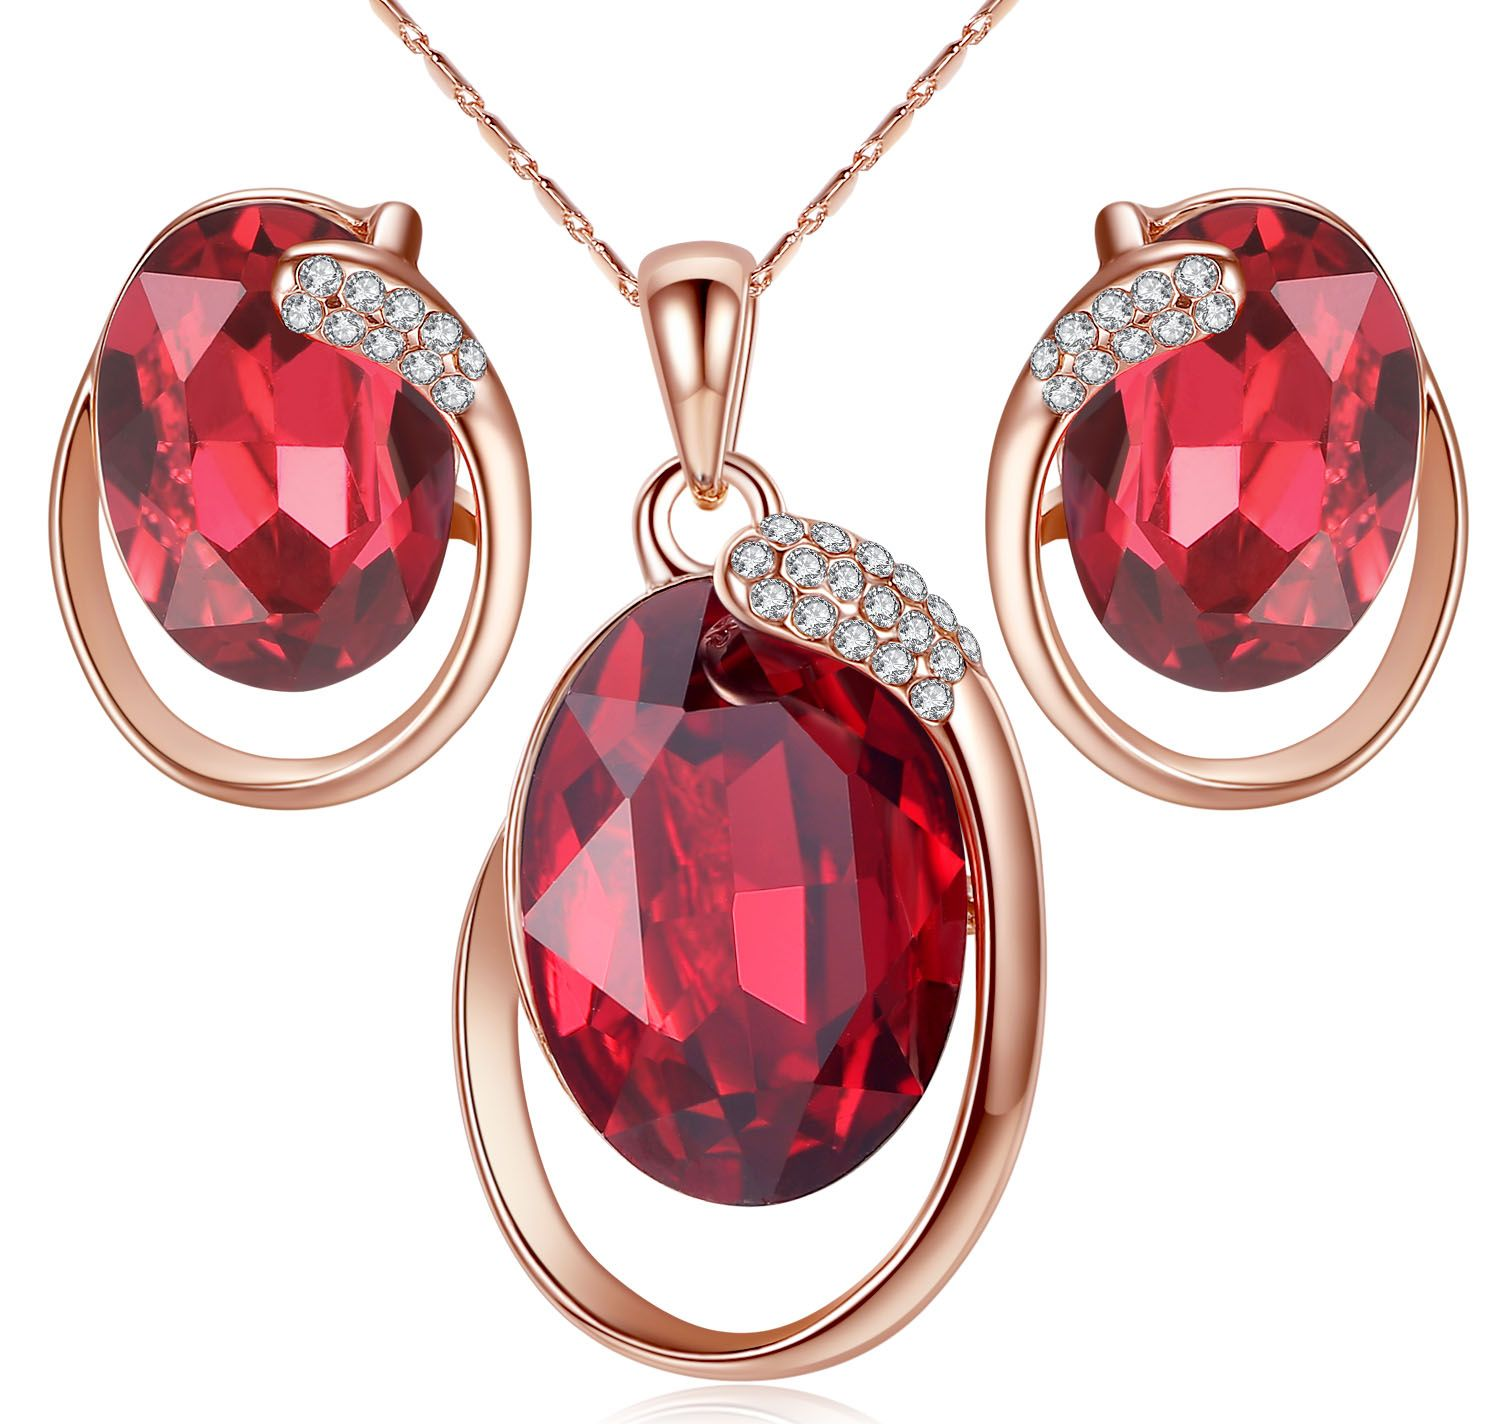 Austrian crystal jewelry set ruby red price awesome woman